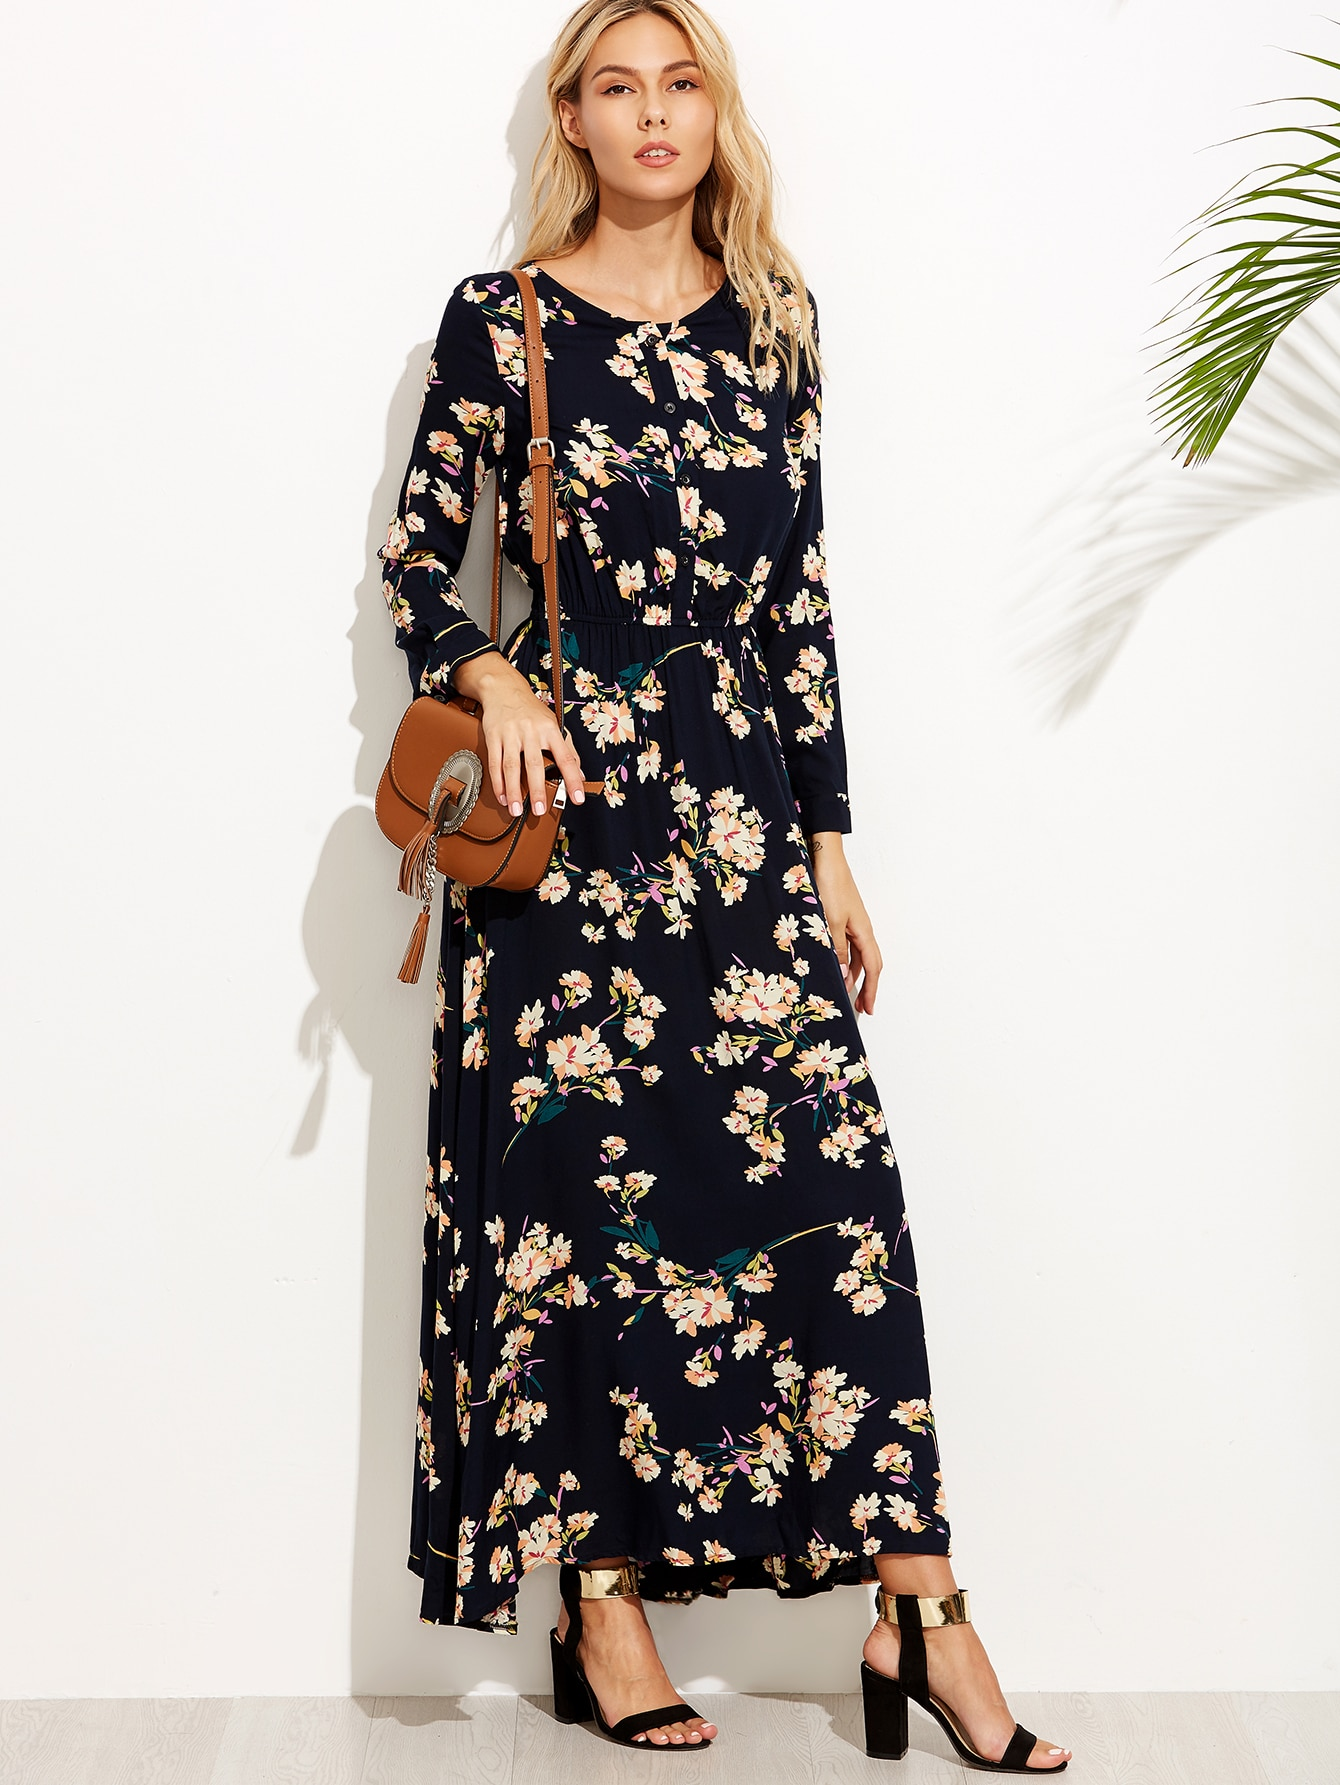 67a929a3d58 Floral Chiffon Maxi Dress Online India